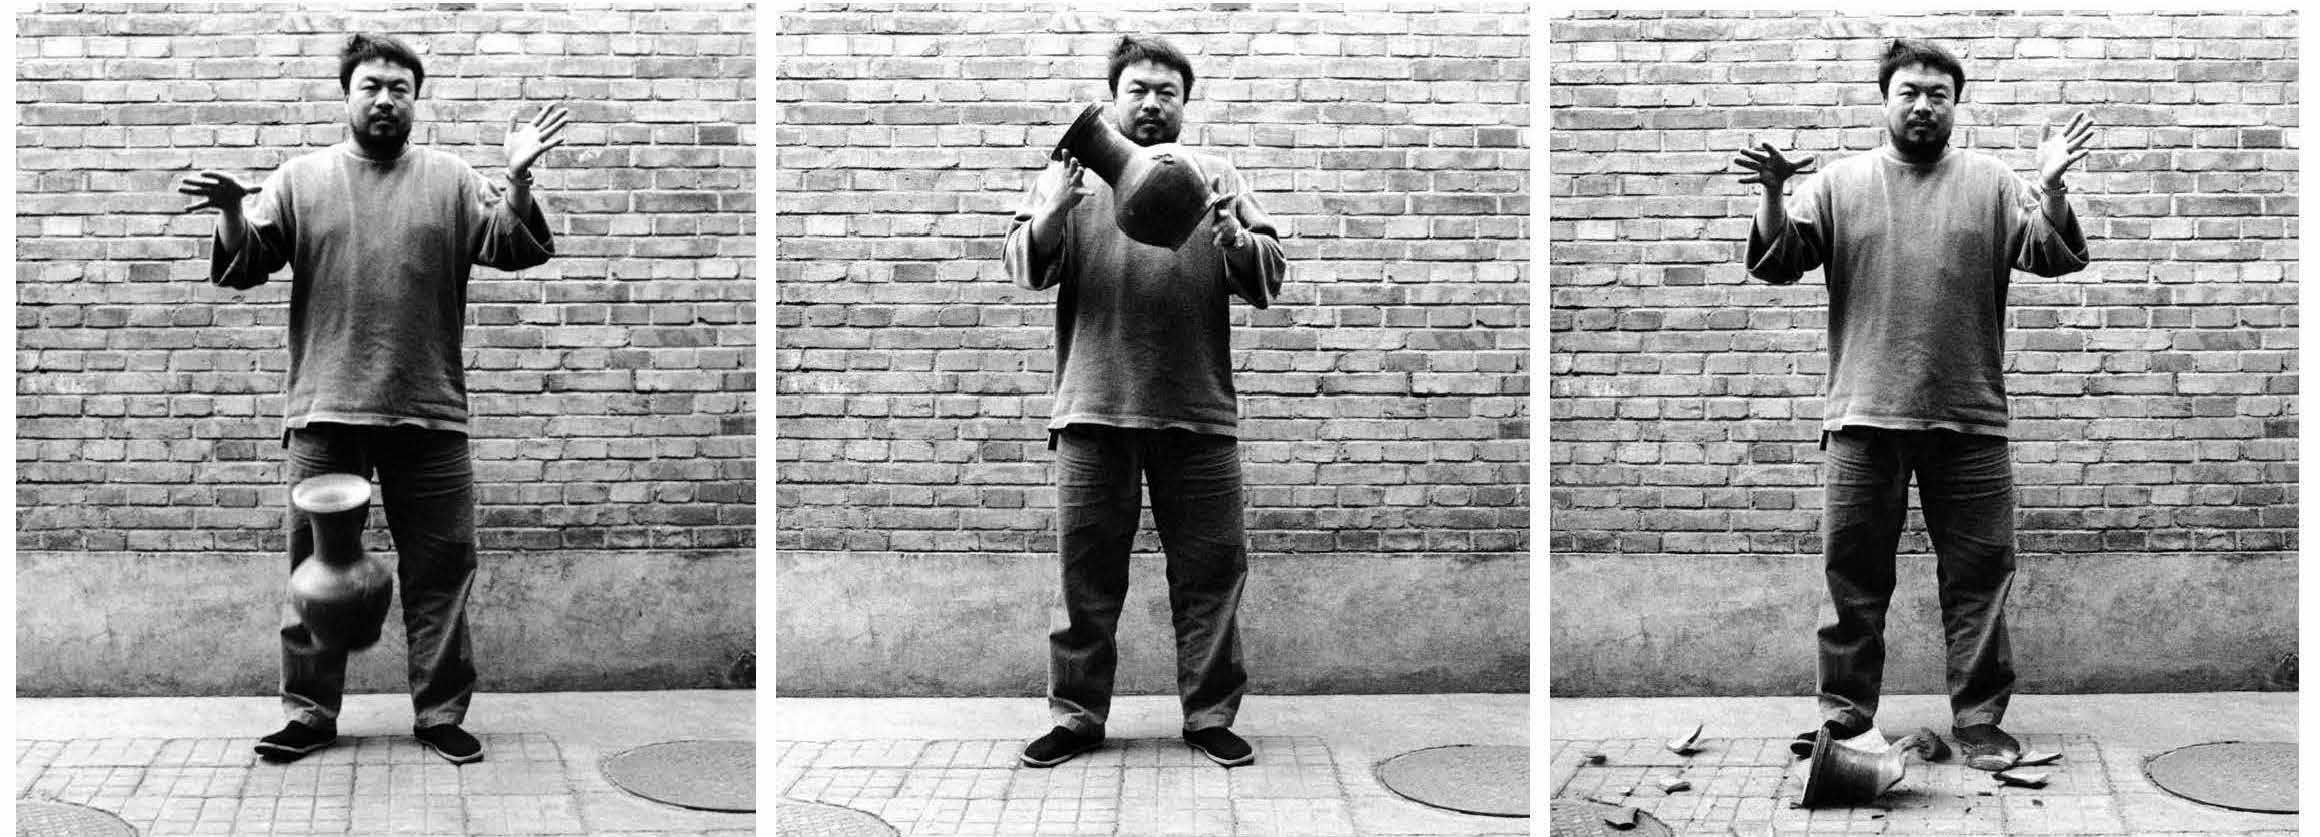 Ai Weiwei, Dropping a Han Dynasty Urn, 1995 / Courtesy the artist and the Walther Collection